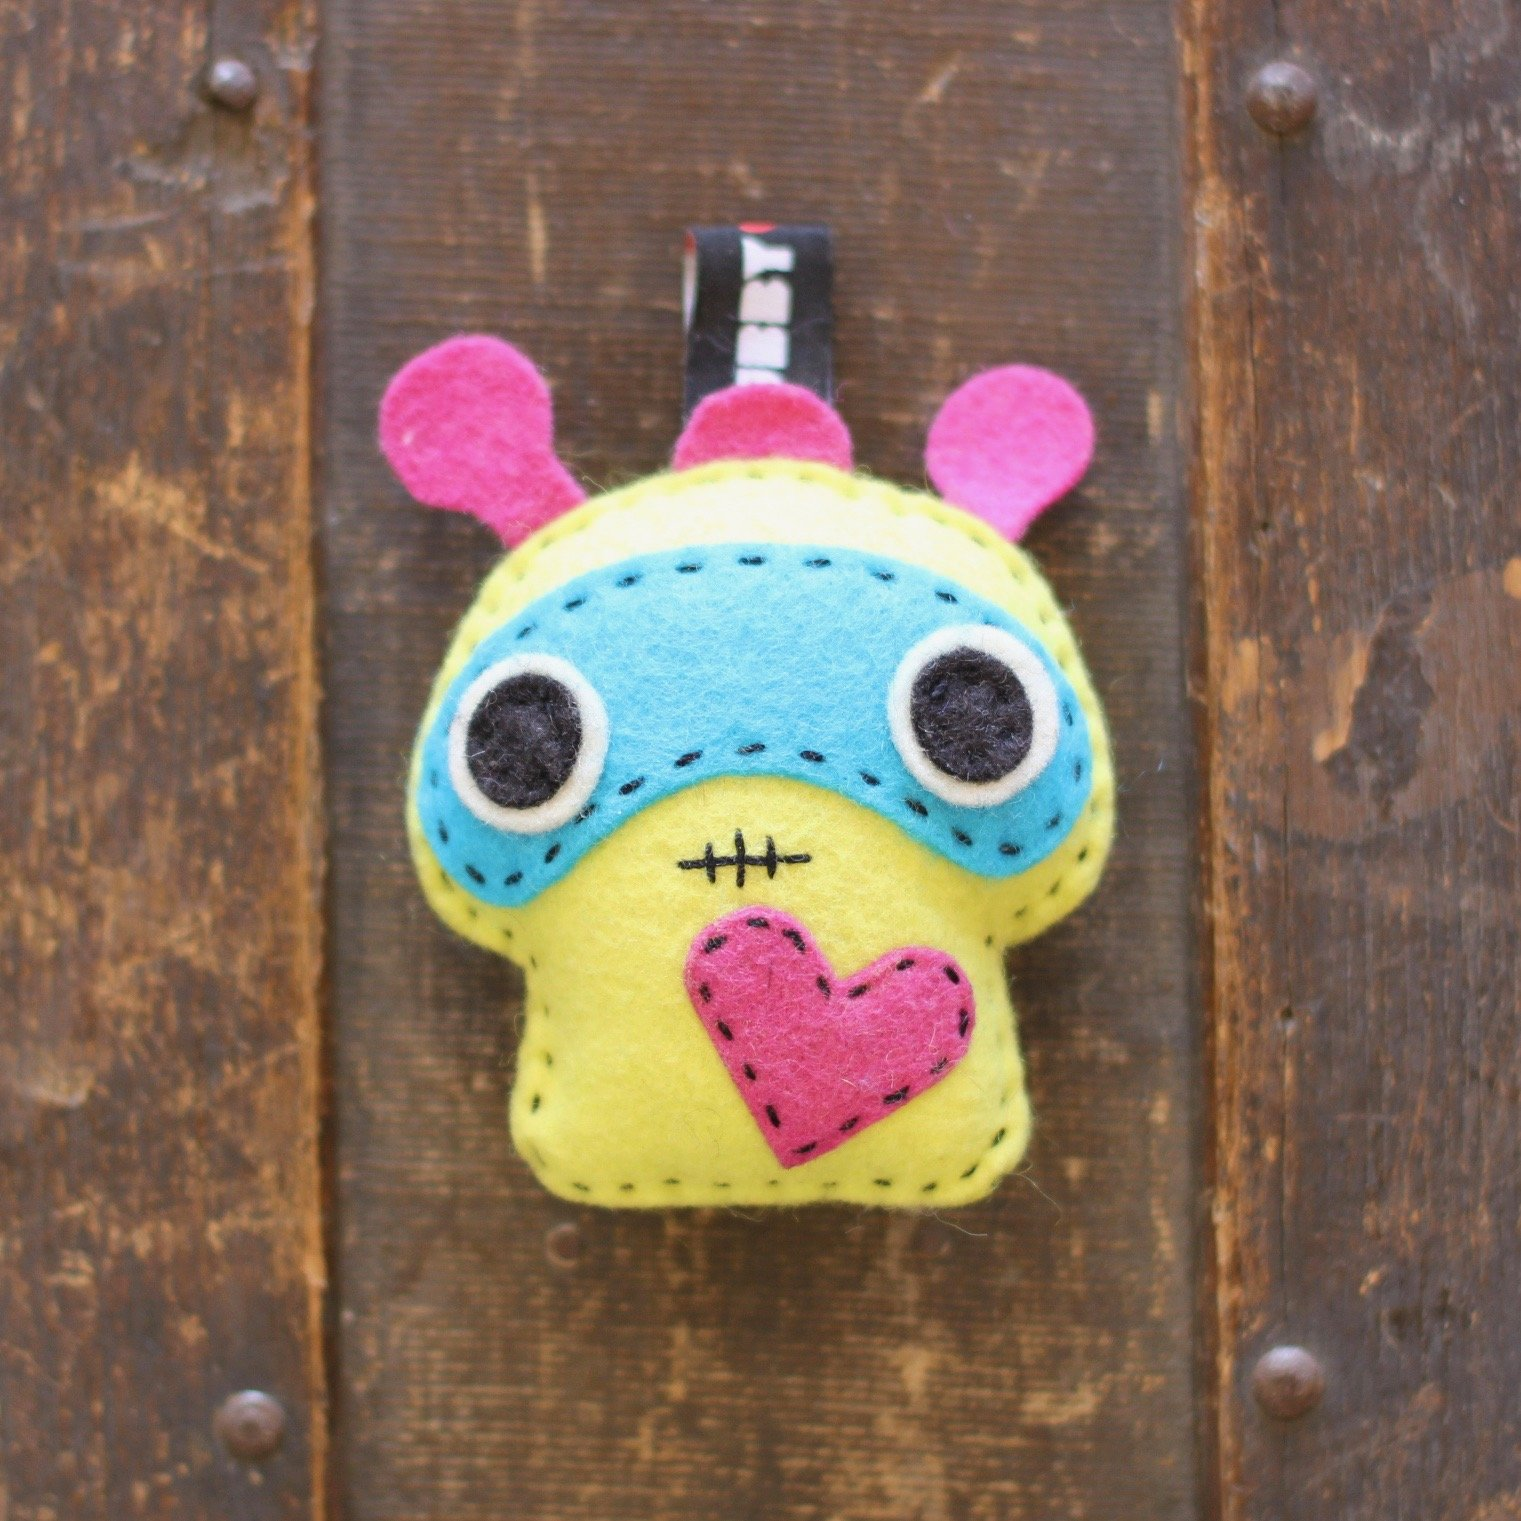 TubbyWubby Stitch & Stuff Critter Kit - Kyla-Byte the Robot